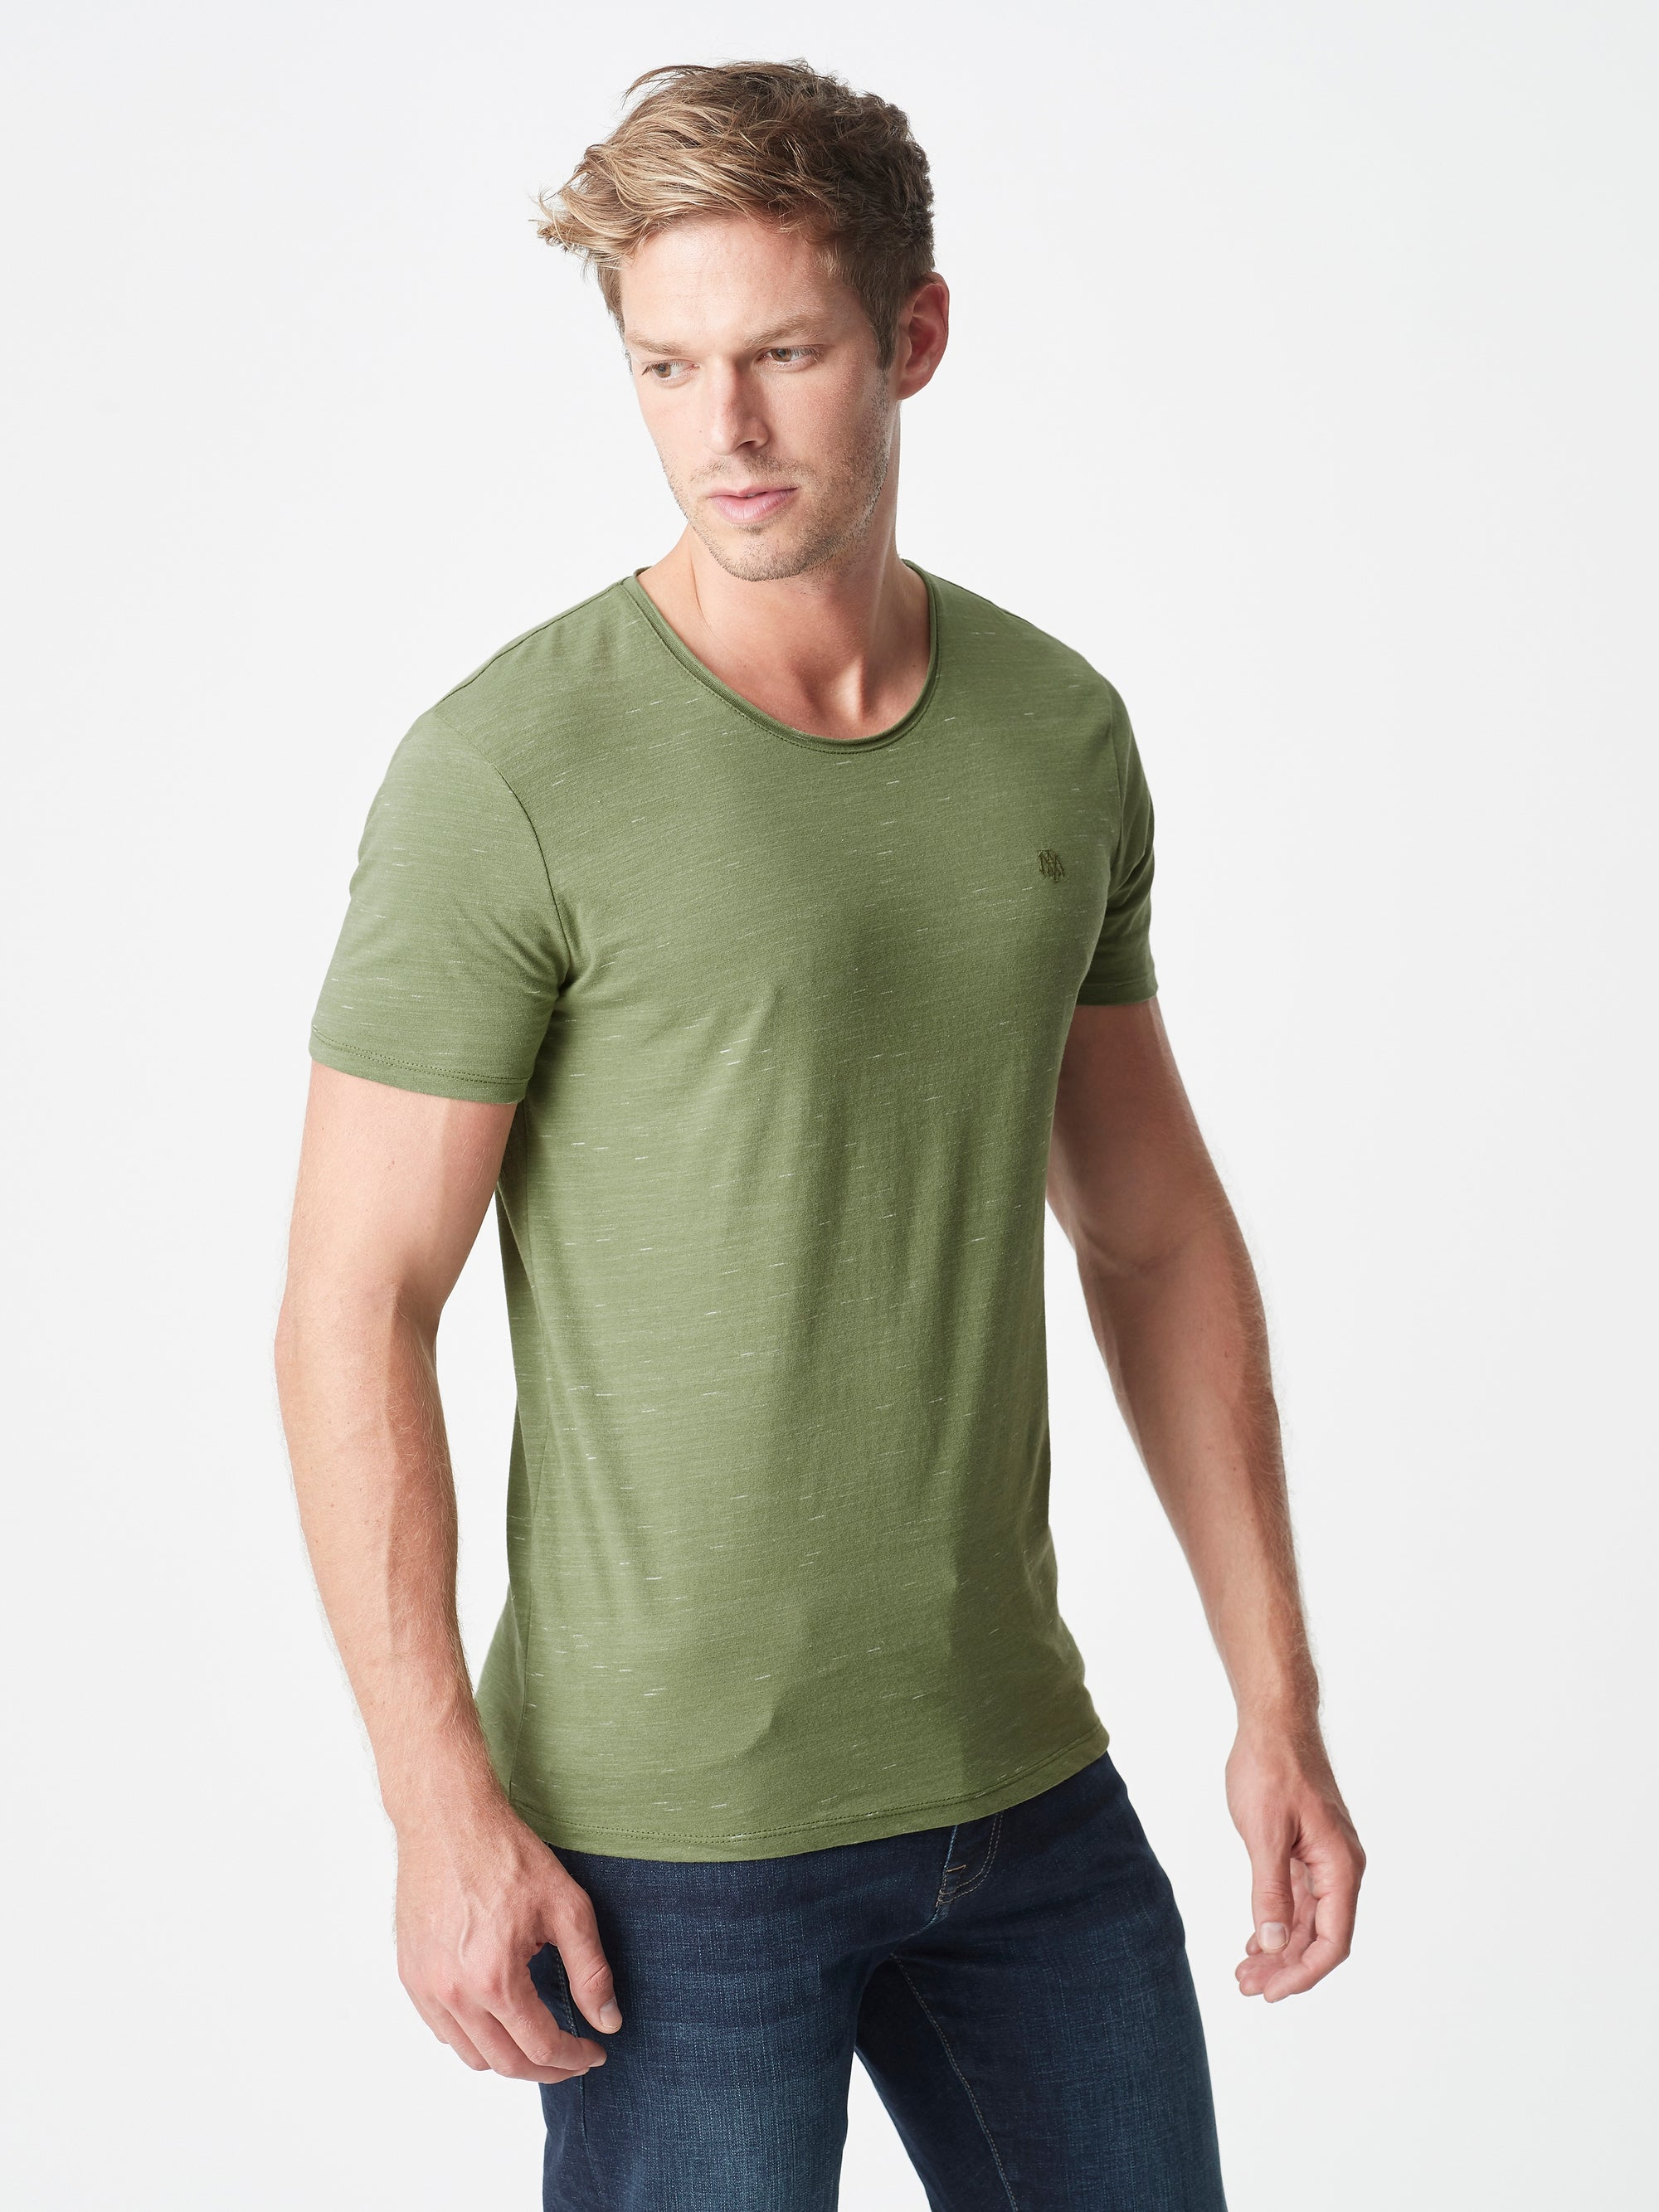 Mens Casual Crew Neck T-Shirt in Olive